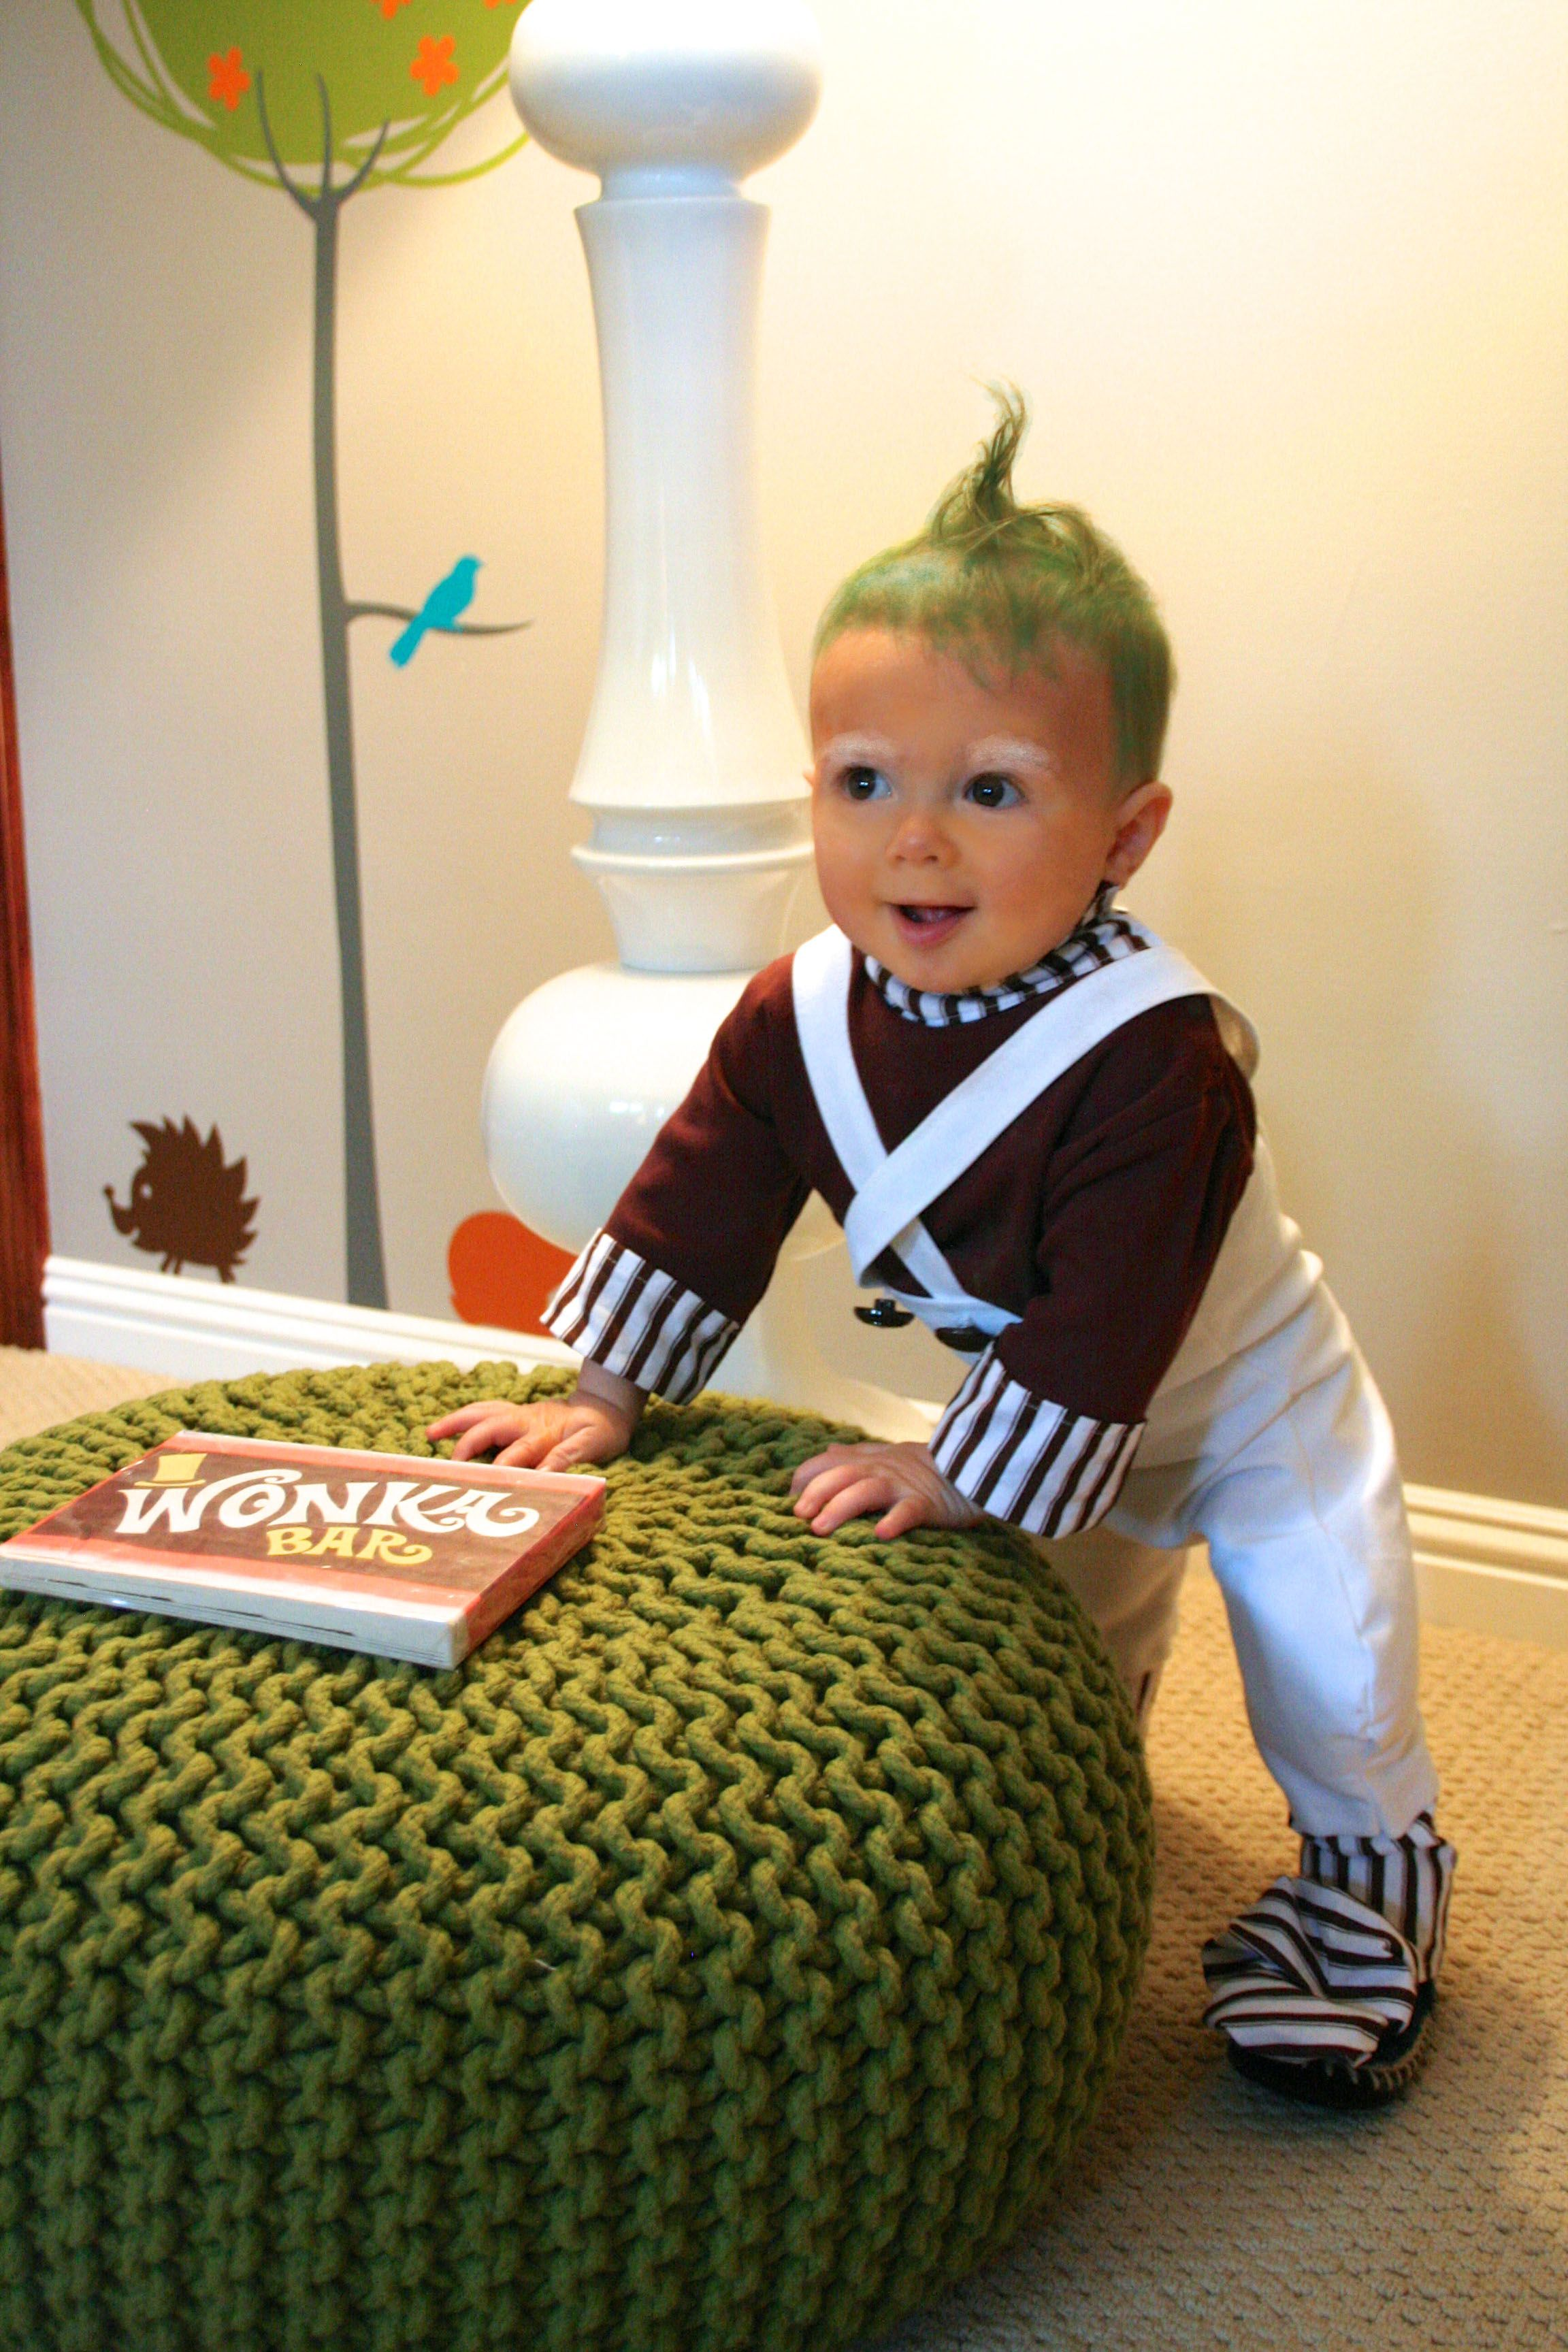 ridiculous baby halloween costumes: epic fail or parenting win